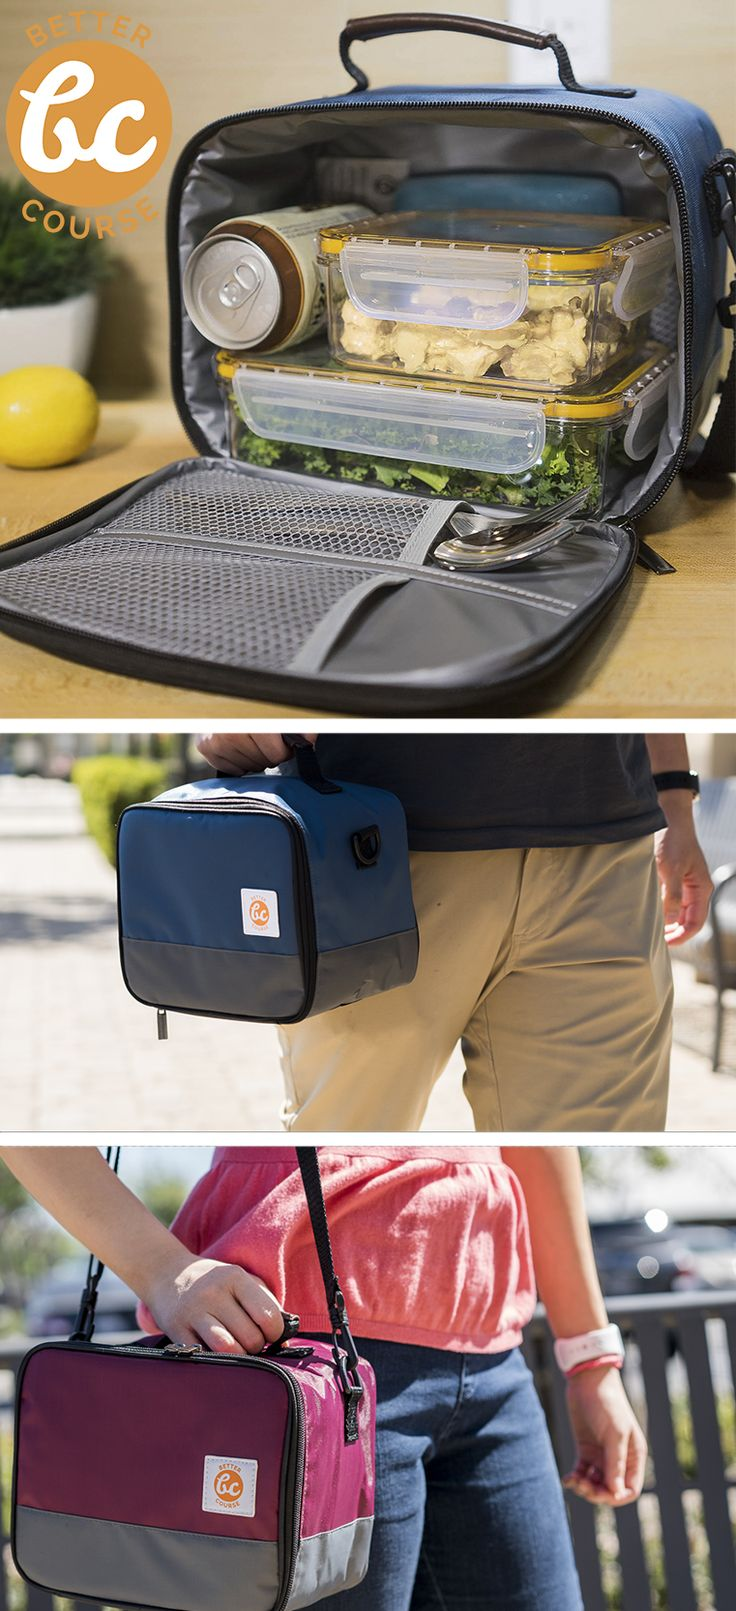 BetterCourse Premium Lunch Bag Kit with FiveGuard Containers [Amazon Exclusive]: This All-In-One insulated lunch solution, which includes both our premium lunch bag and 2 BPA-free containers, is beautiful and affordable for your everyday lunch needs. Everything is leakproof, stainproof, dishwasher safe, insulated, and is provides multiple helpful pockets (for slim ice pack, utensils, protein bars). We know you're sick and tired of lousy lunch bags and containers, so it's time to buy your…